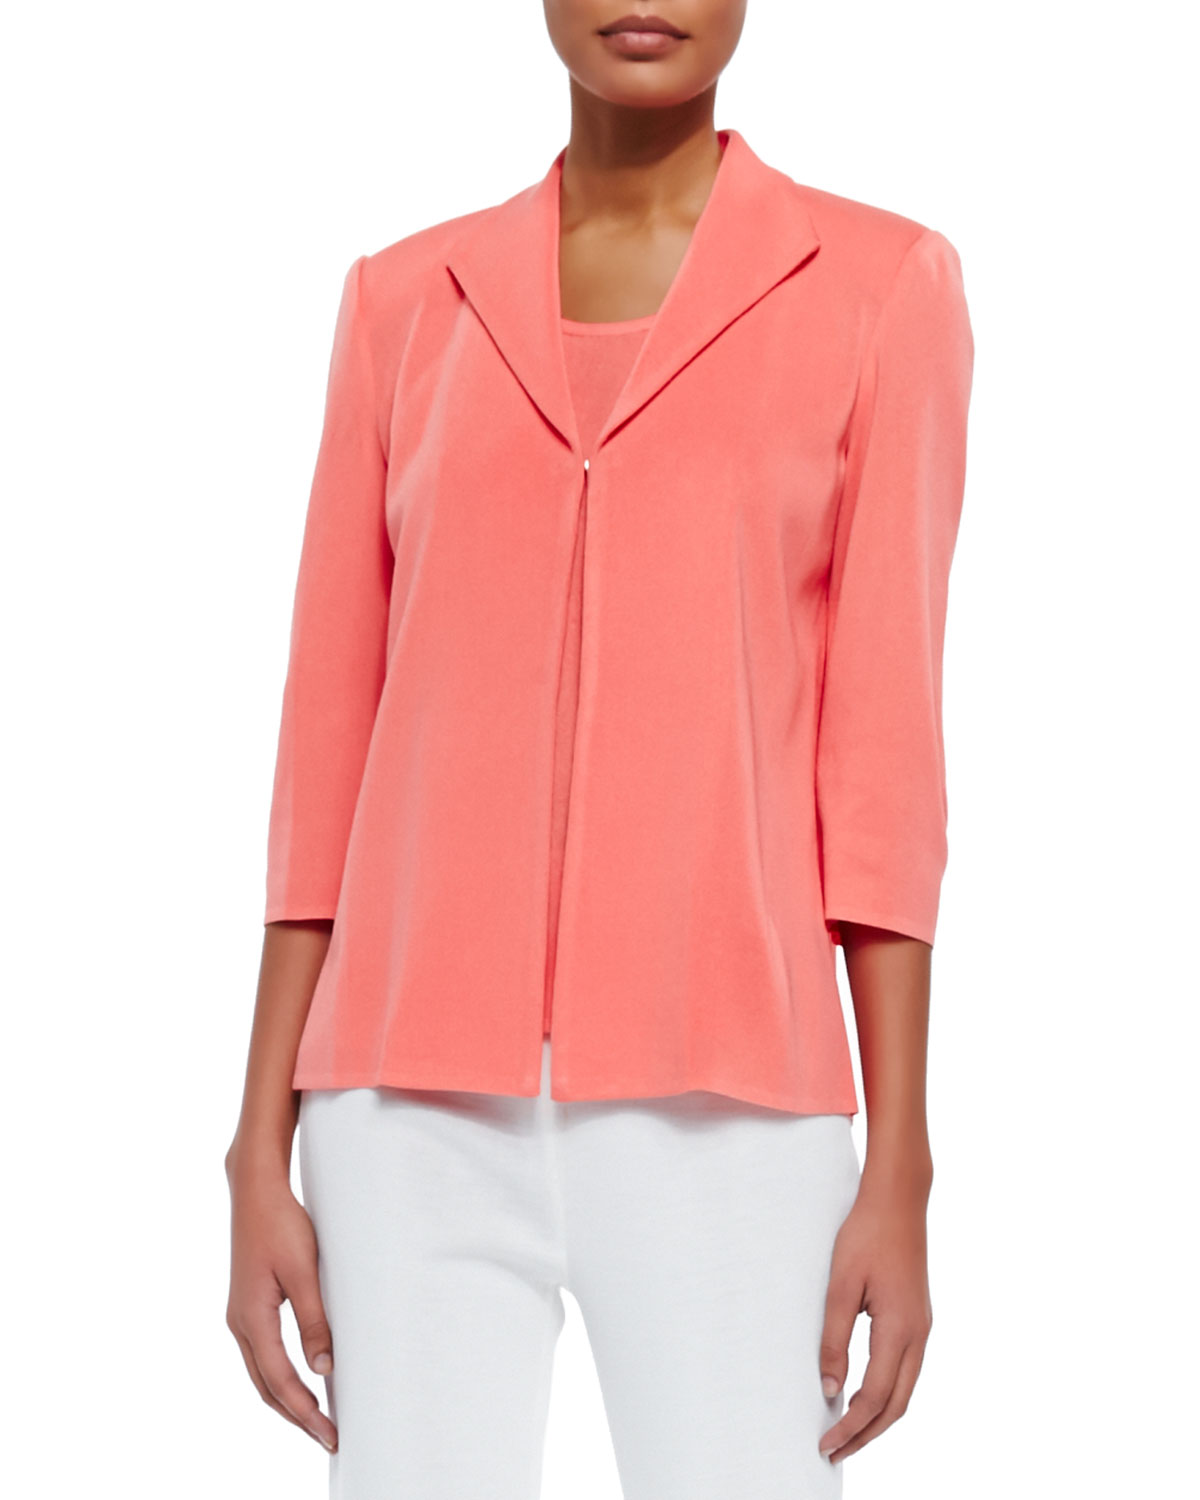 3/4-Sleeve Jacket, Coral, Women's - Misook - Coral (0X)